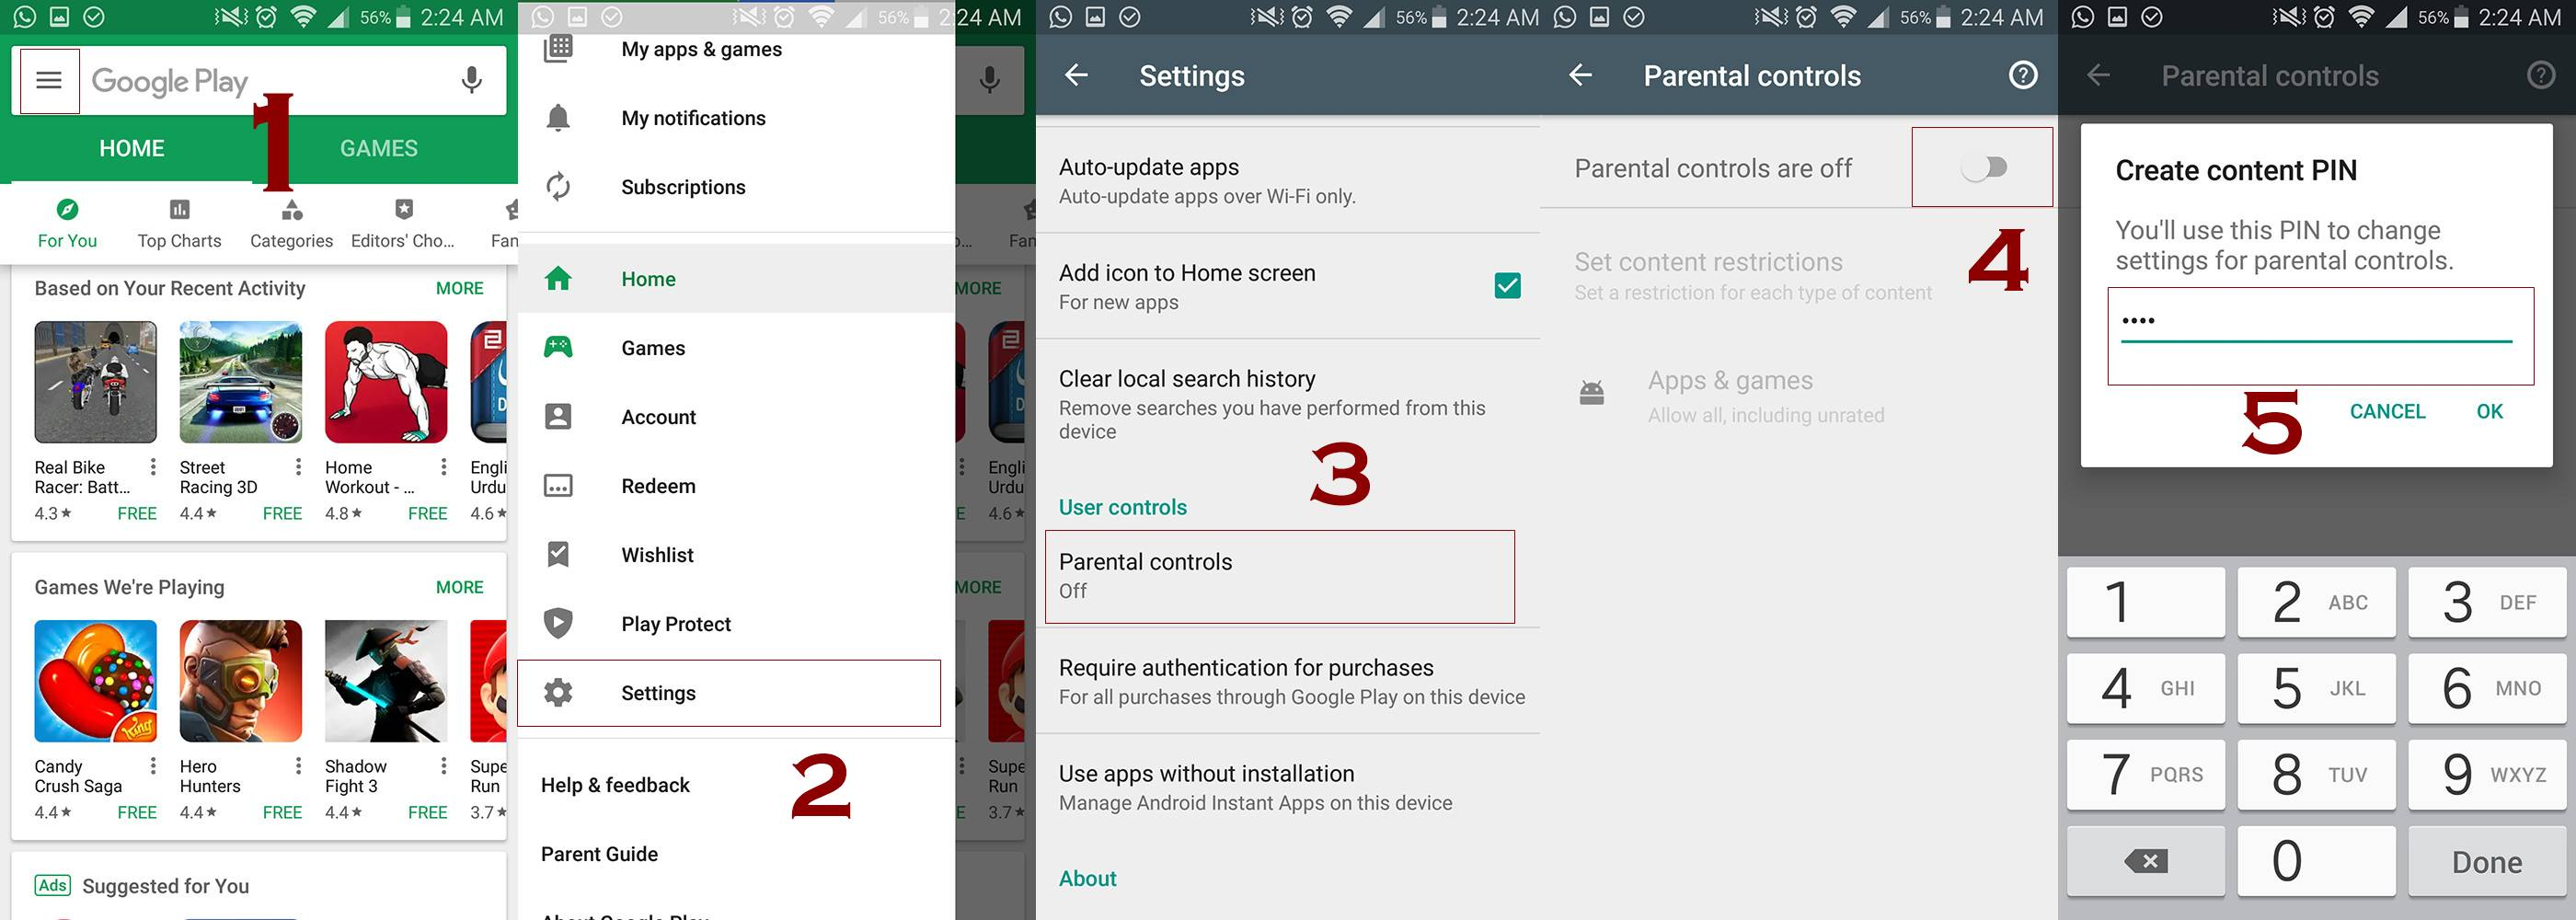 parental controls in play store - Homepage